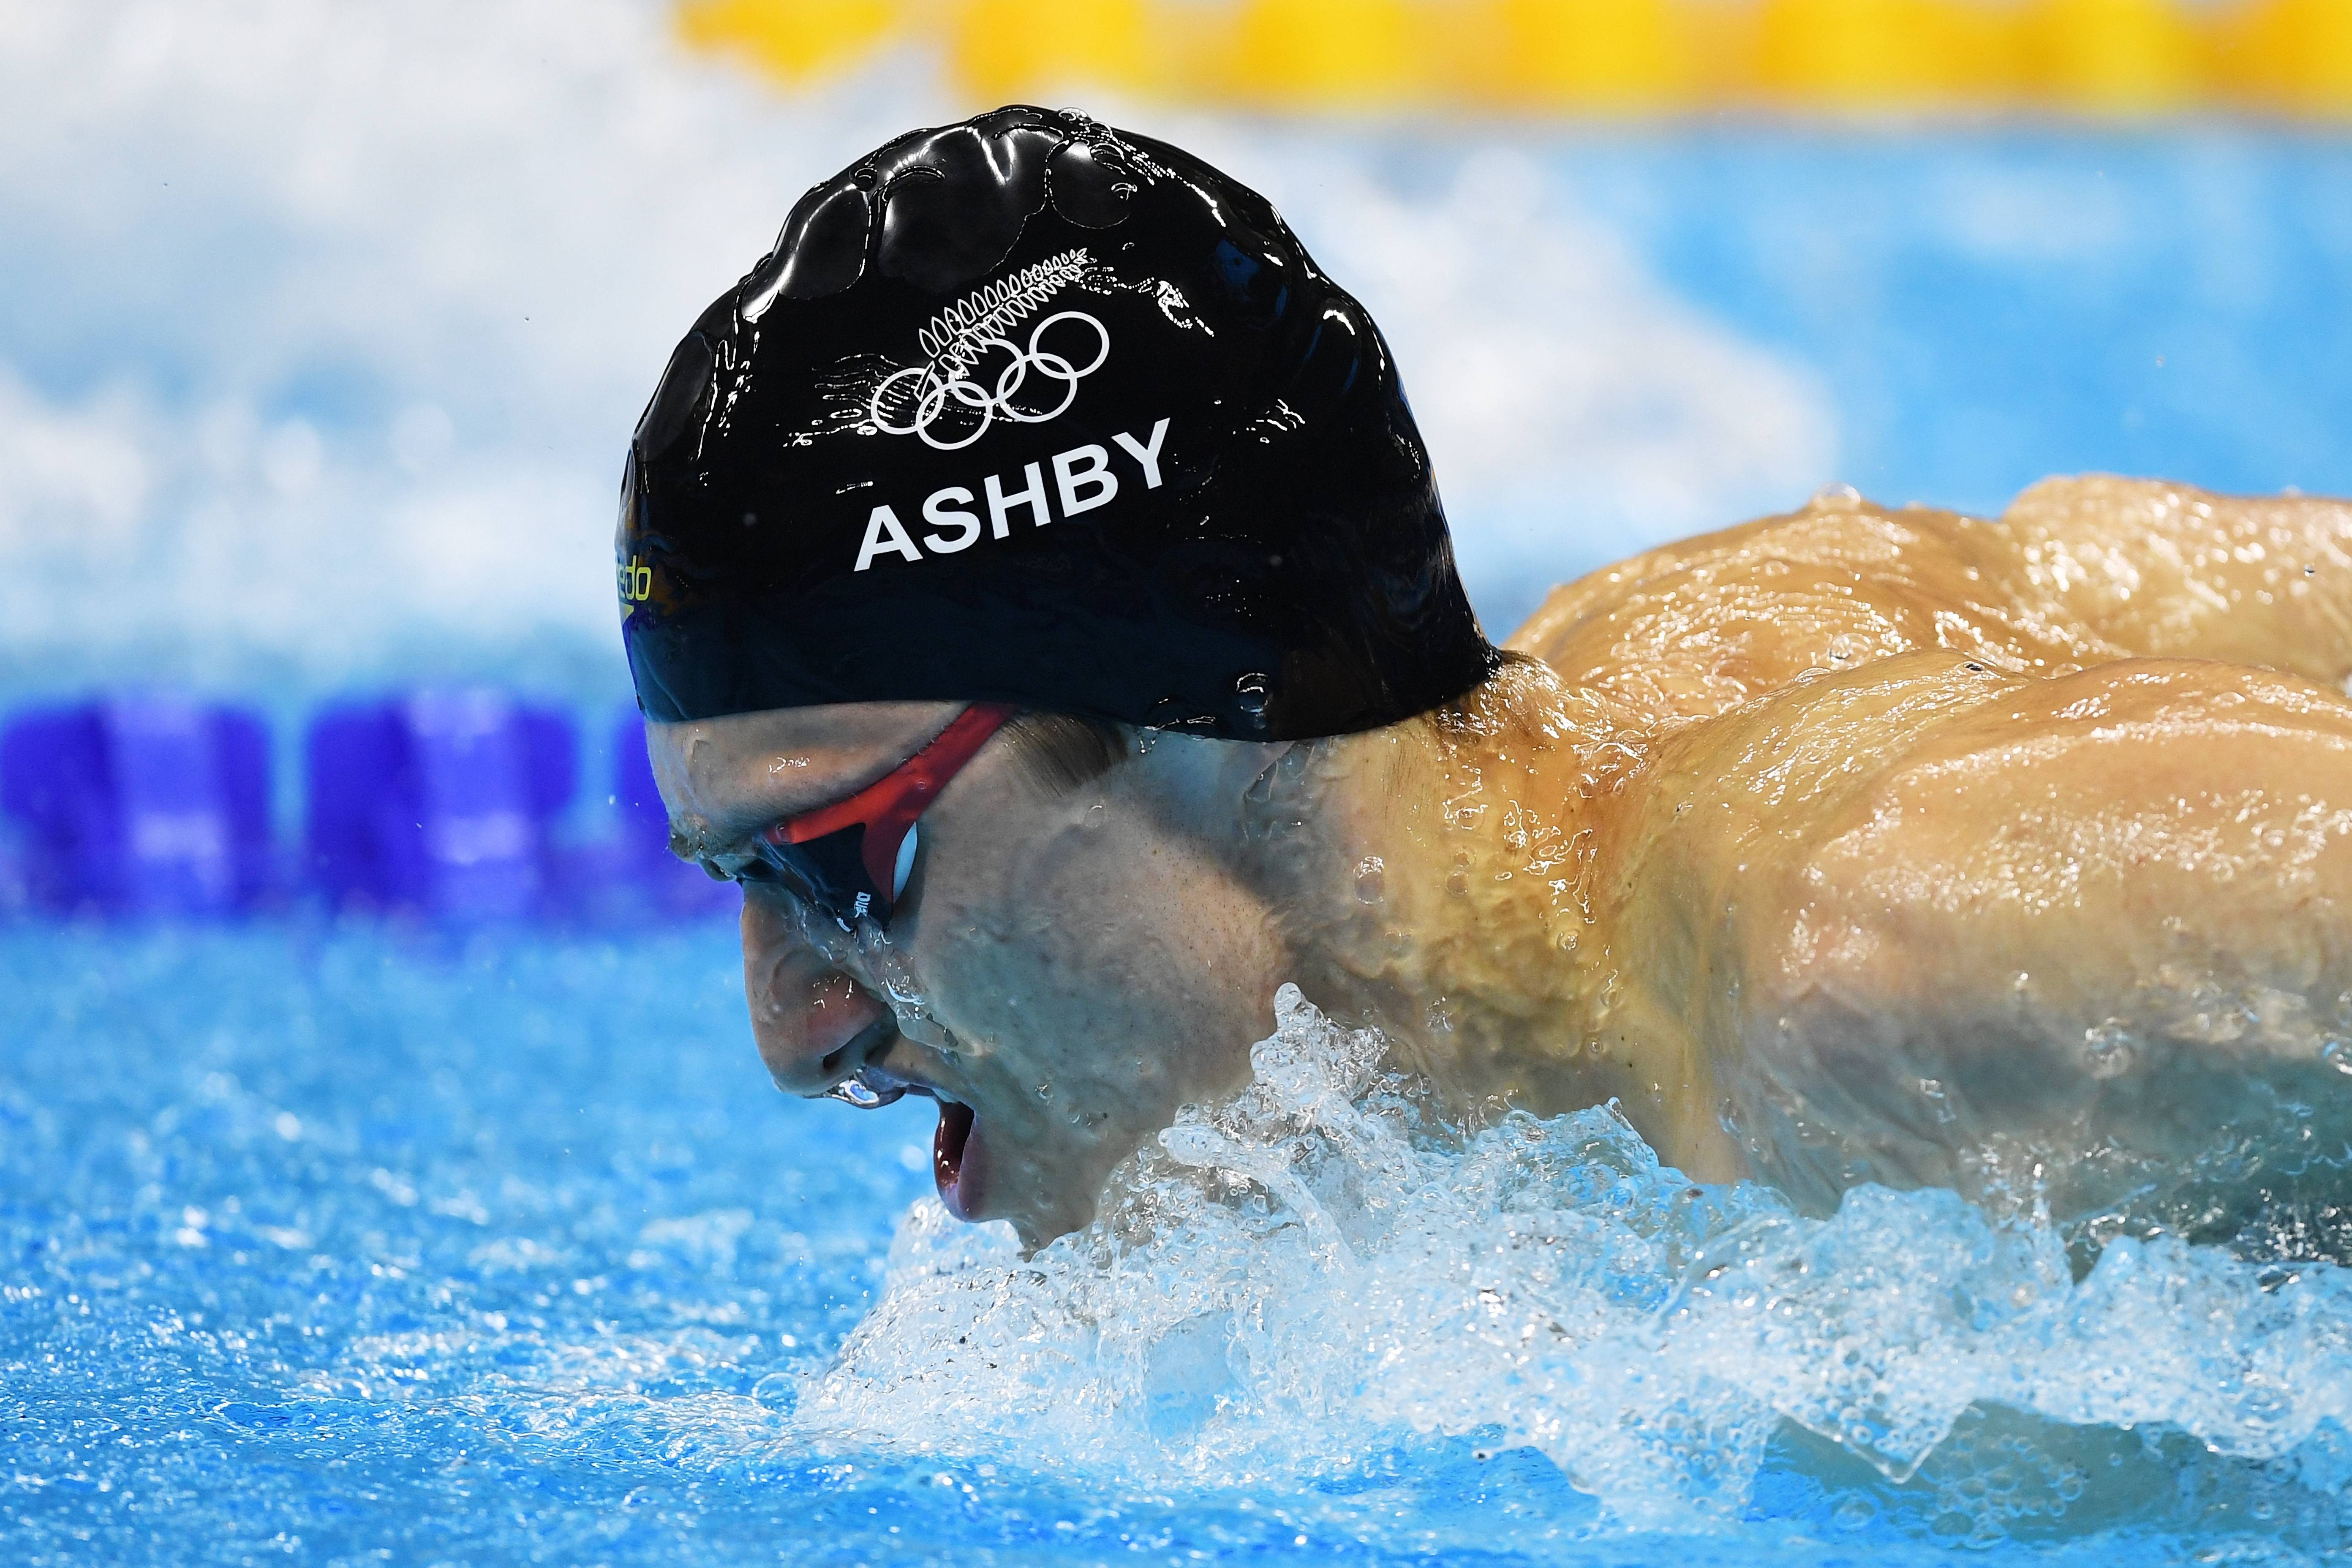 PHOTOS: Counting Michael Phelpss 28 Olympic medals